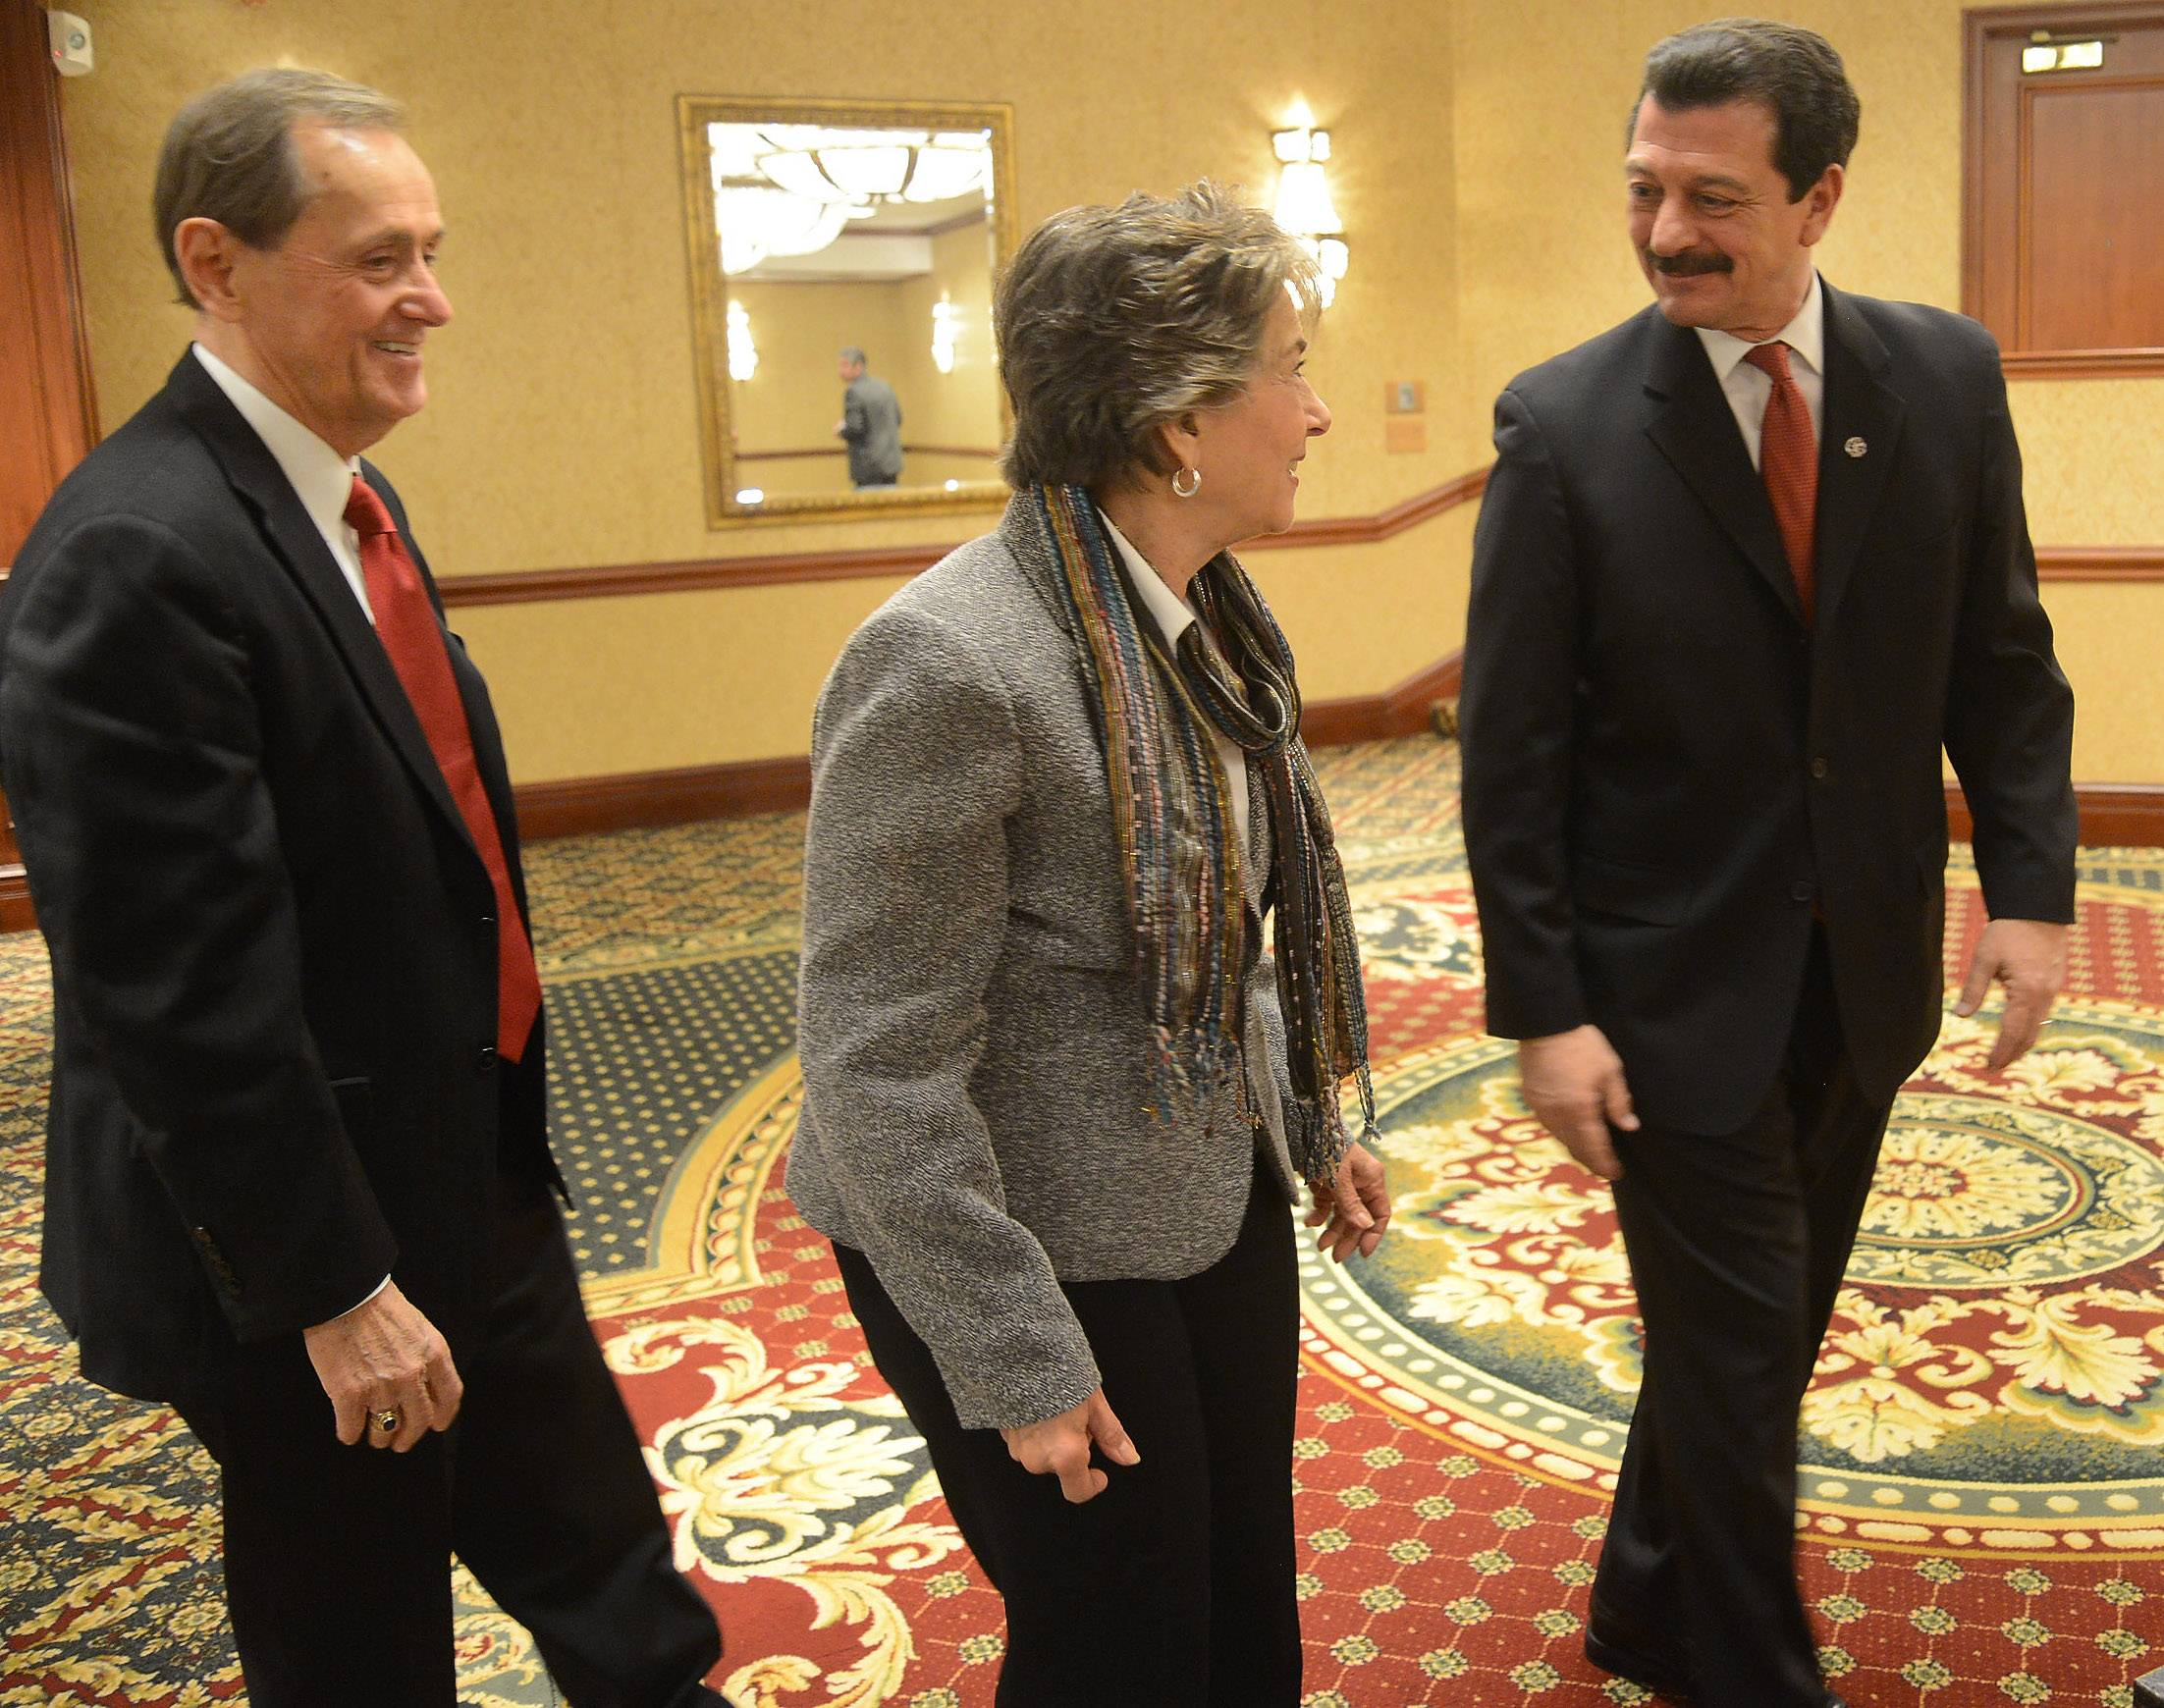 Prospect Heights Mayor Nick Helmer, left, and Wheeling Village President Dean Argiris, talk with U.S. Rep. Jan Schakowsky, an Evanston Democrat, at Friday at the state of the municipalities lunch.